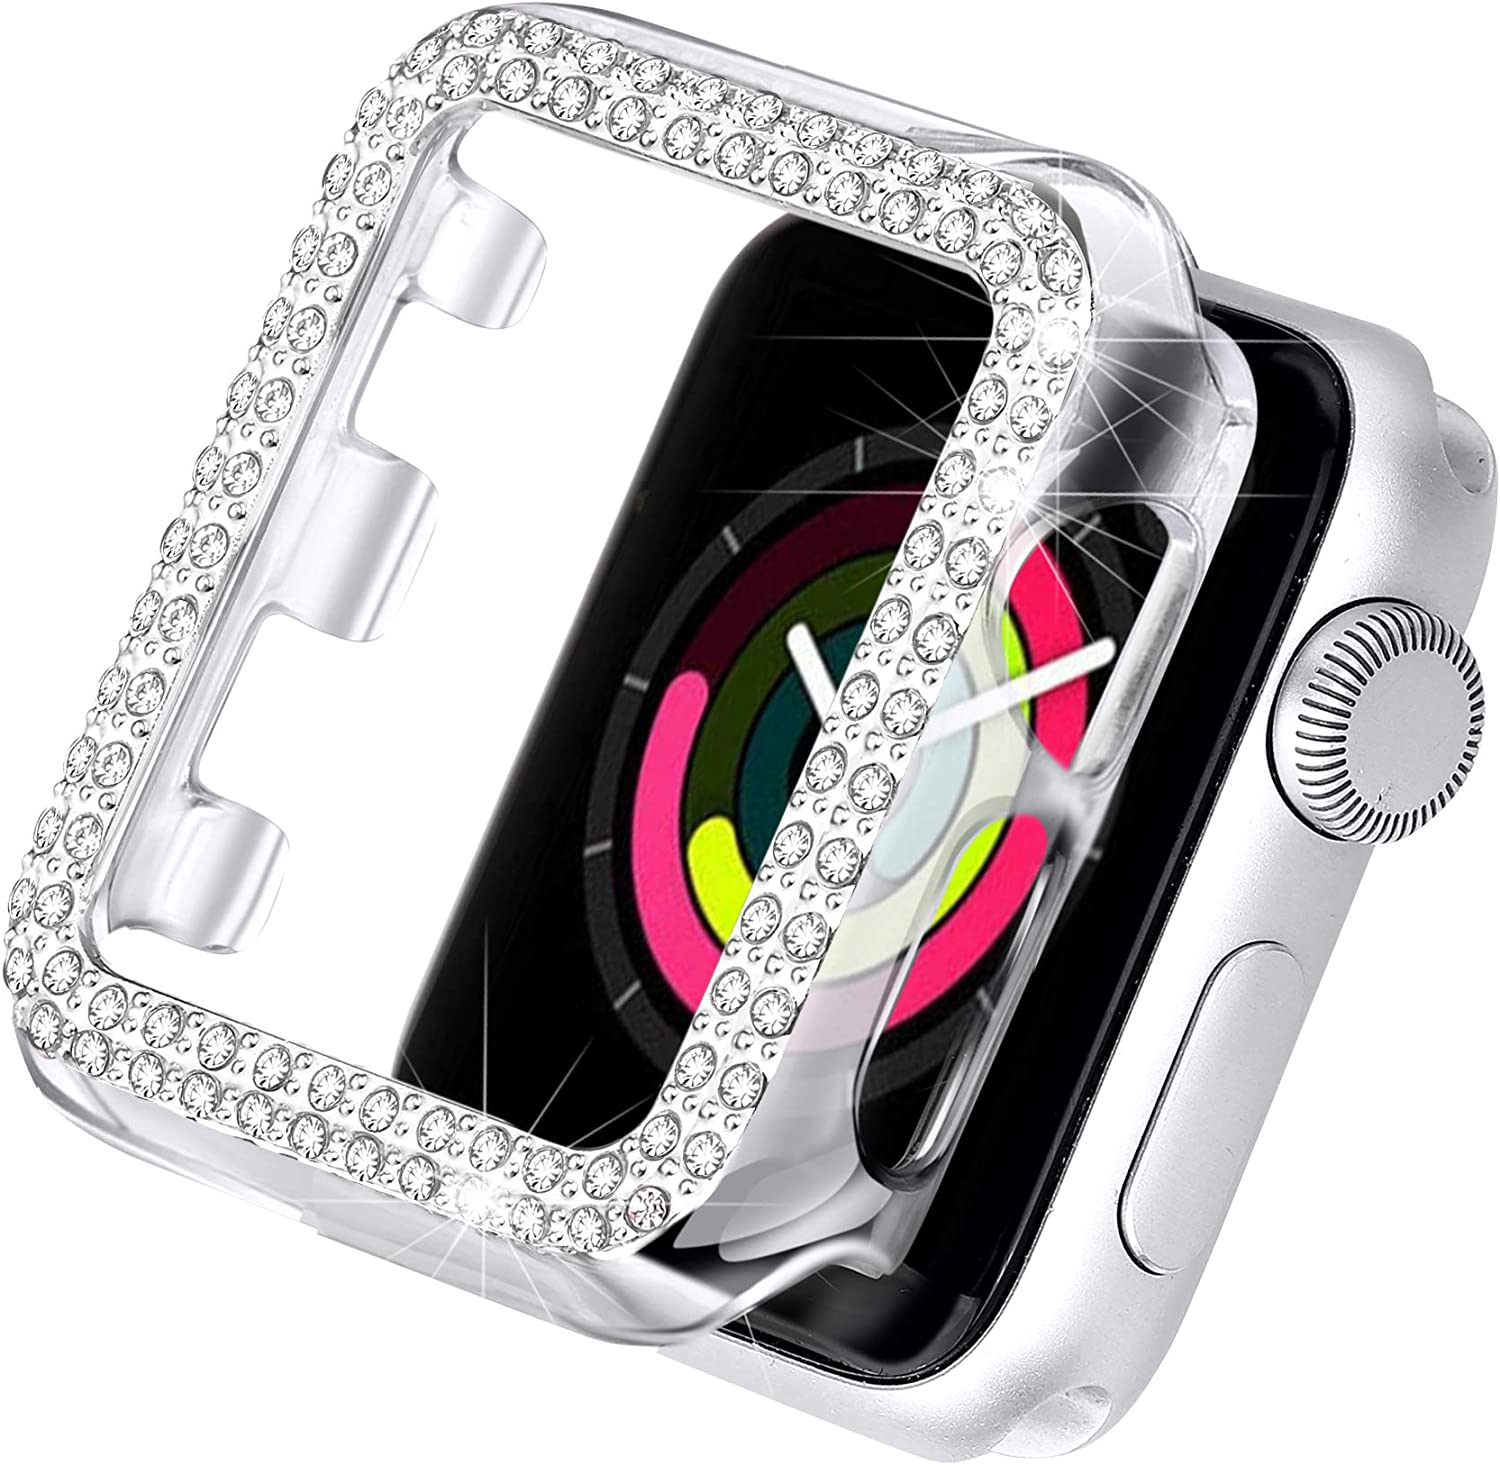 Secbolt Bling Case Compatible with Apple Watch 38mm, Full Cover Bumper Screen Protector for iWatch Series 3 2 1 (Clear-38mm)